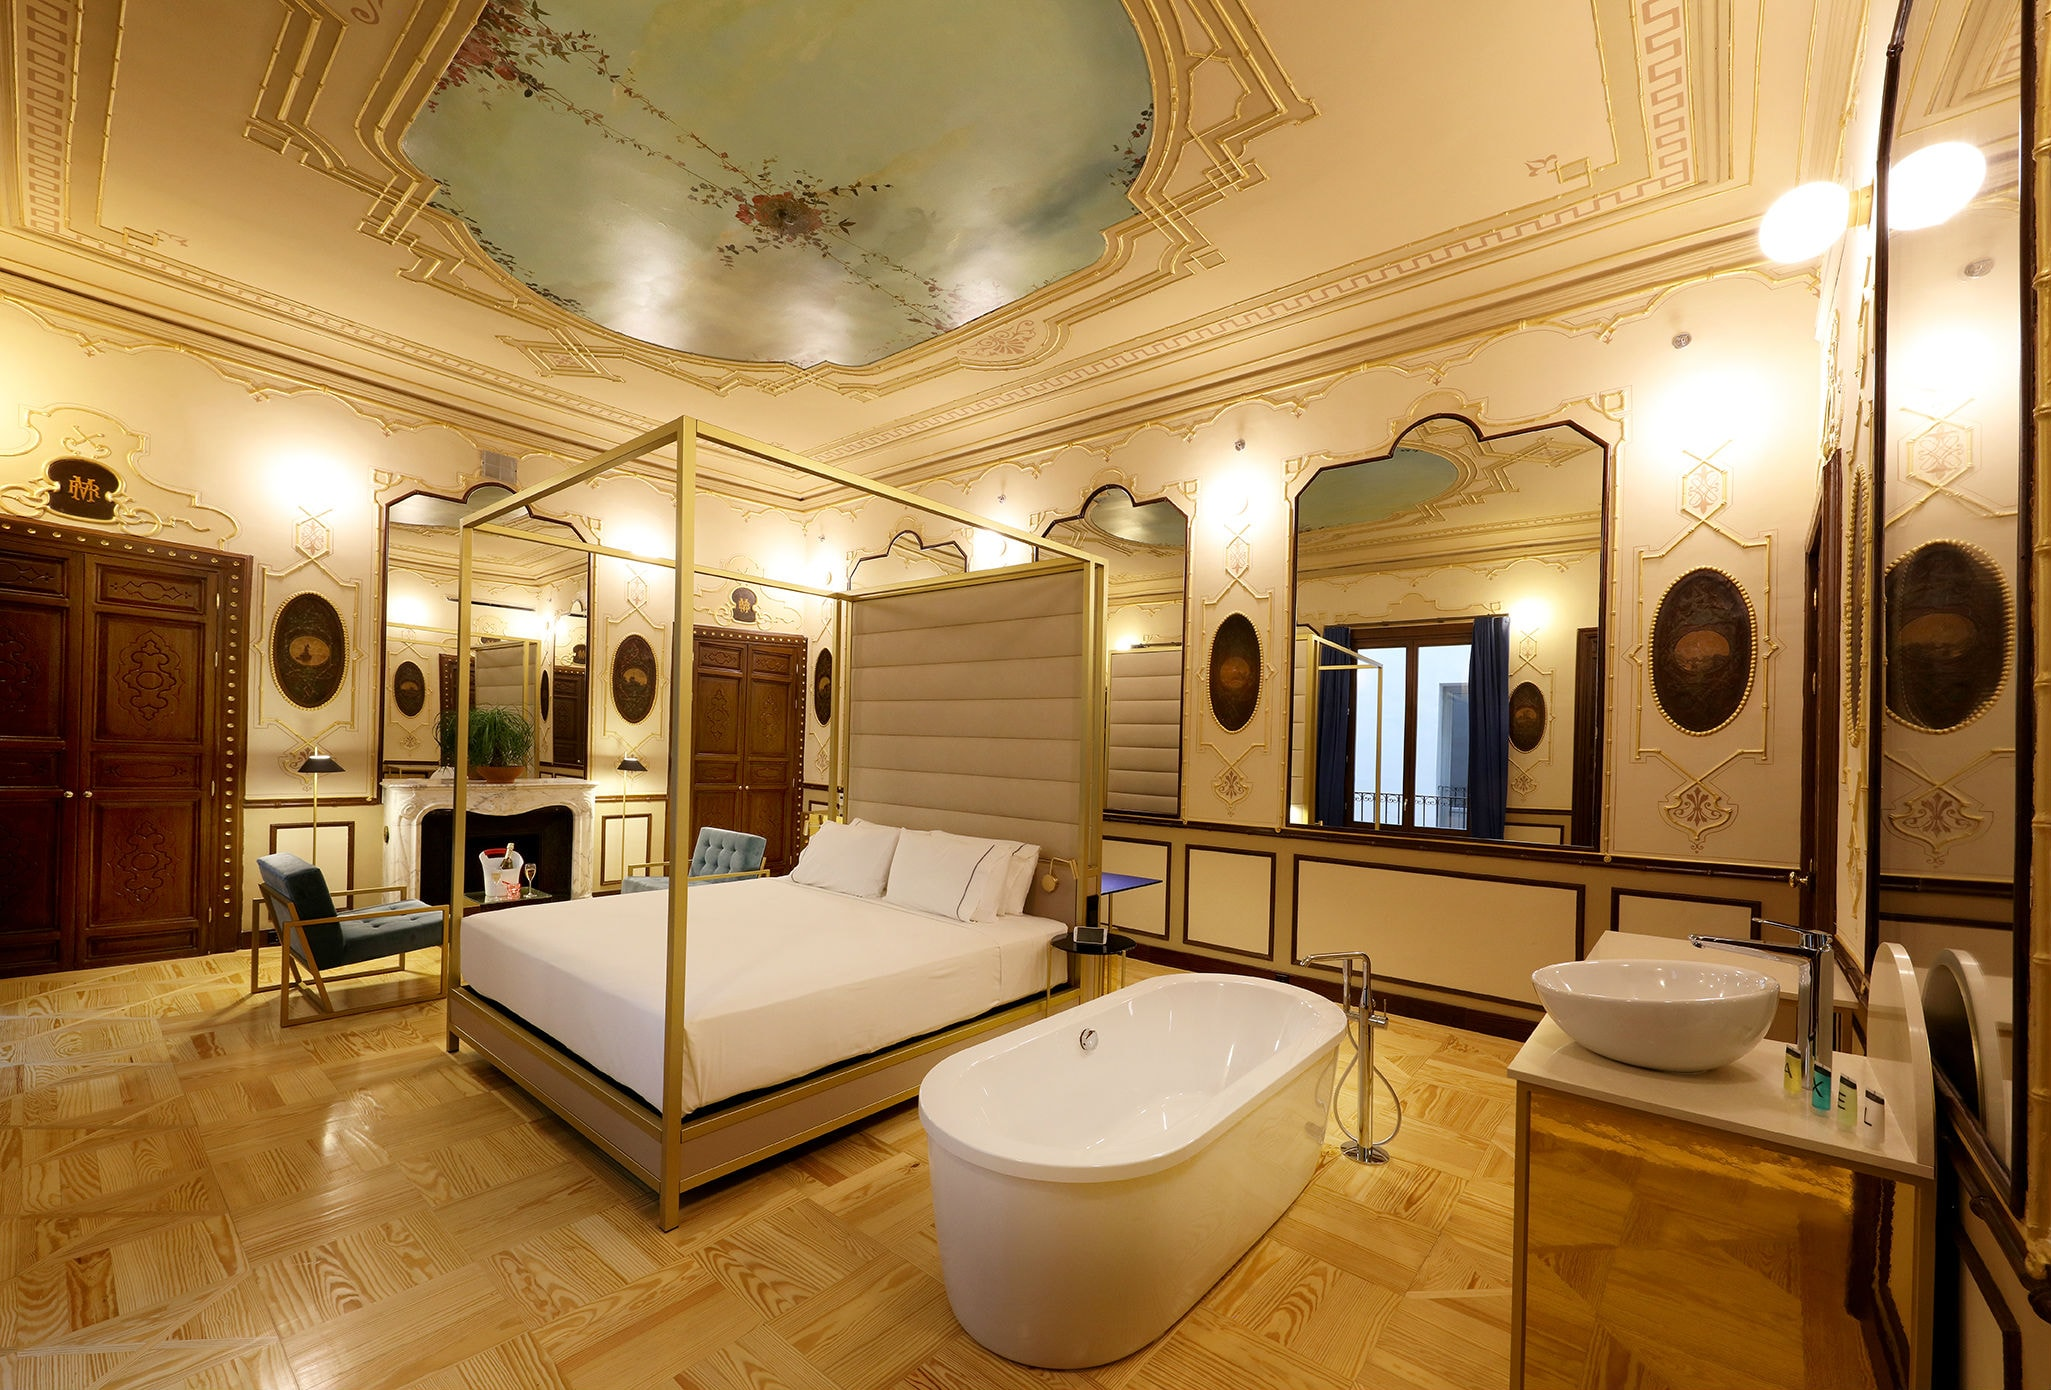 The Quirkiest Places to Stay in Madrid in Autumn